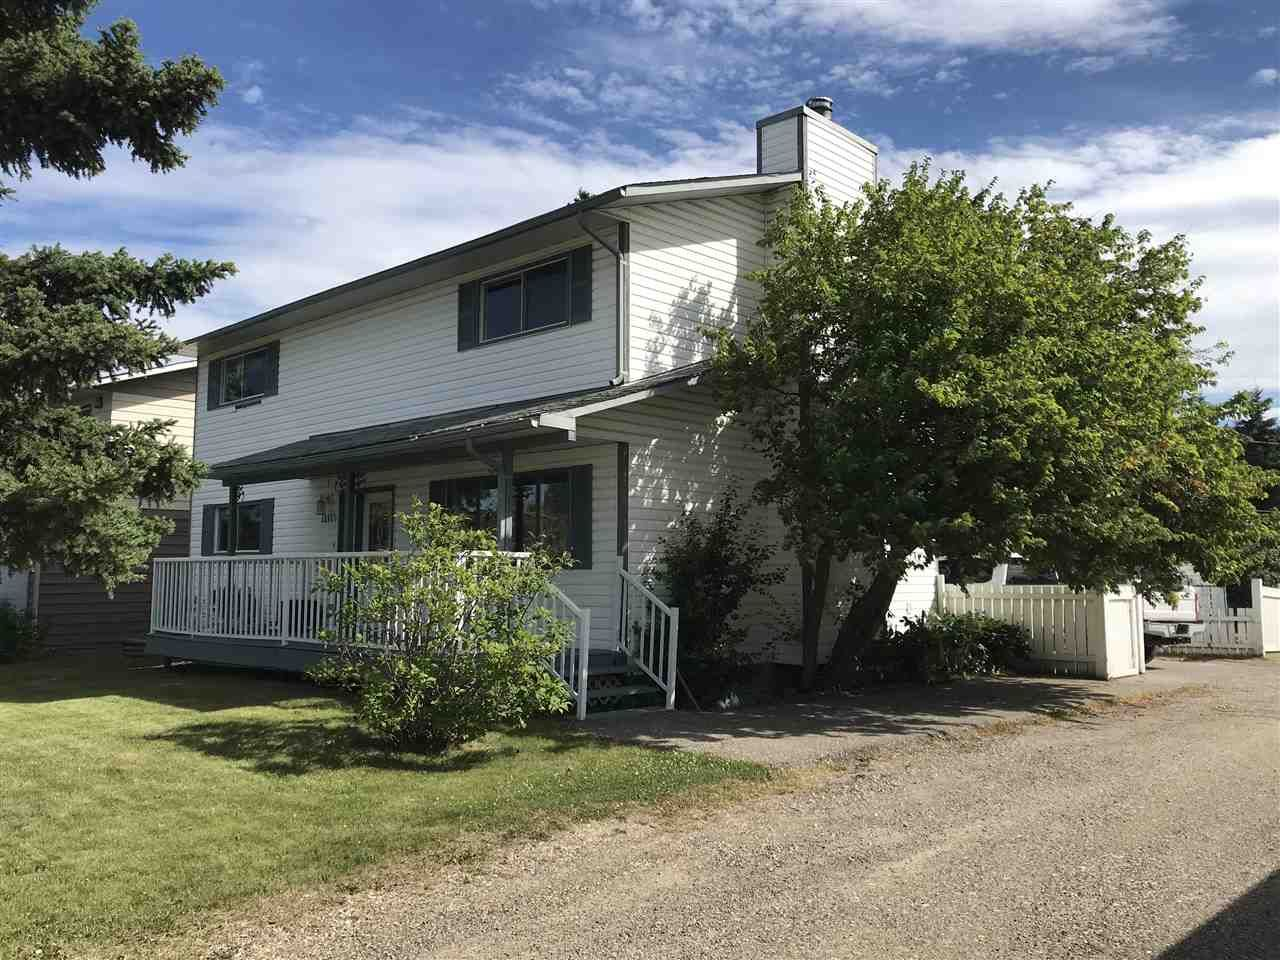 Main Photo: 11115 102 STREET in : Fort St. John - City NW House for sale : MLS®# R2485022